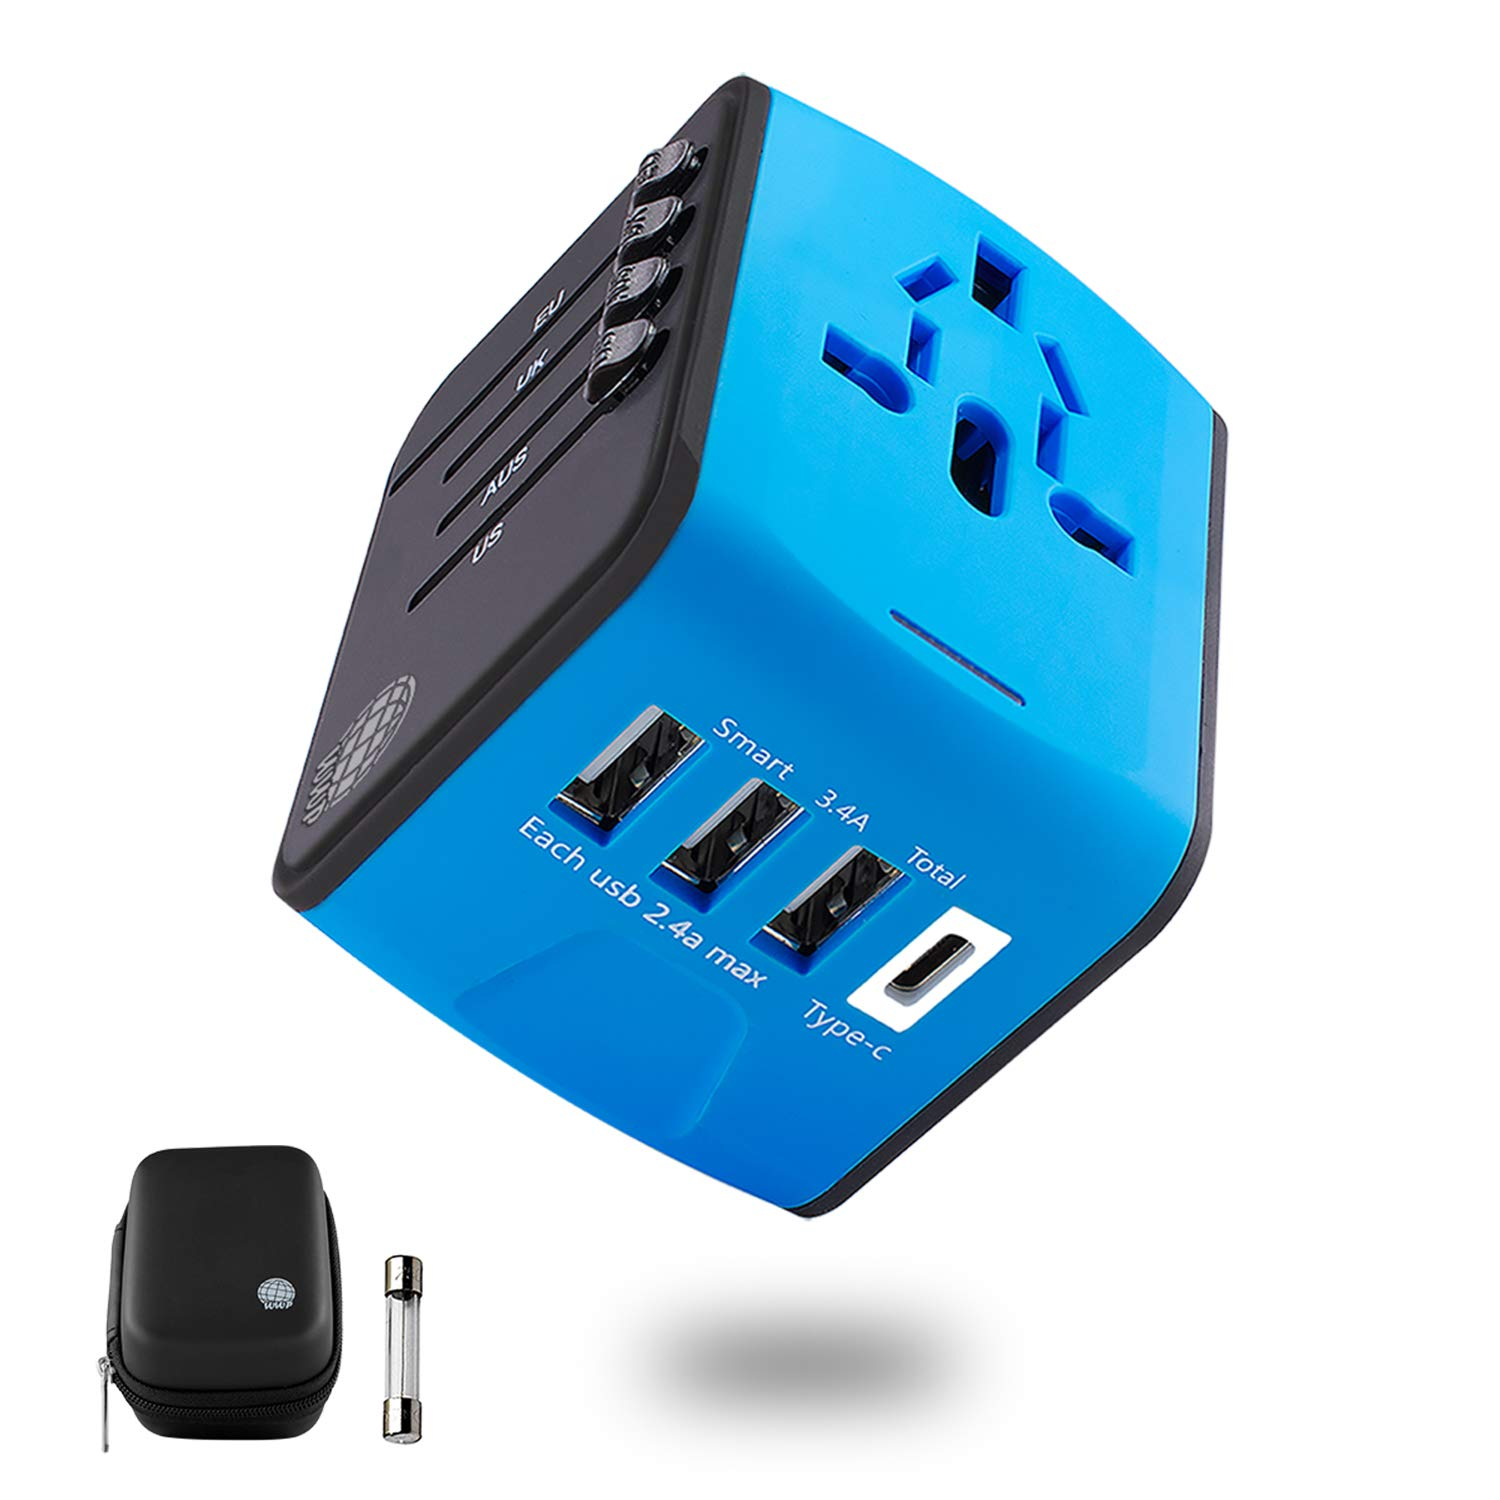 International Travel Adapter | Universal Power Adapter | European Adapter | Worldwide Outlet Adapter Plug Converter | USB Type C Wall Travel Charger for Cell Phone Tablets and Laptops in EU UK USA AUS